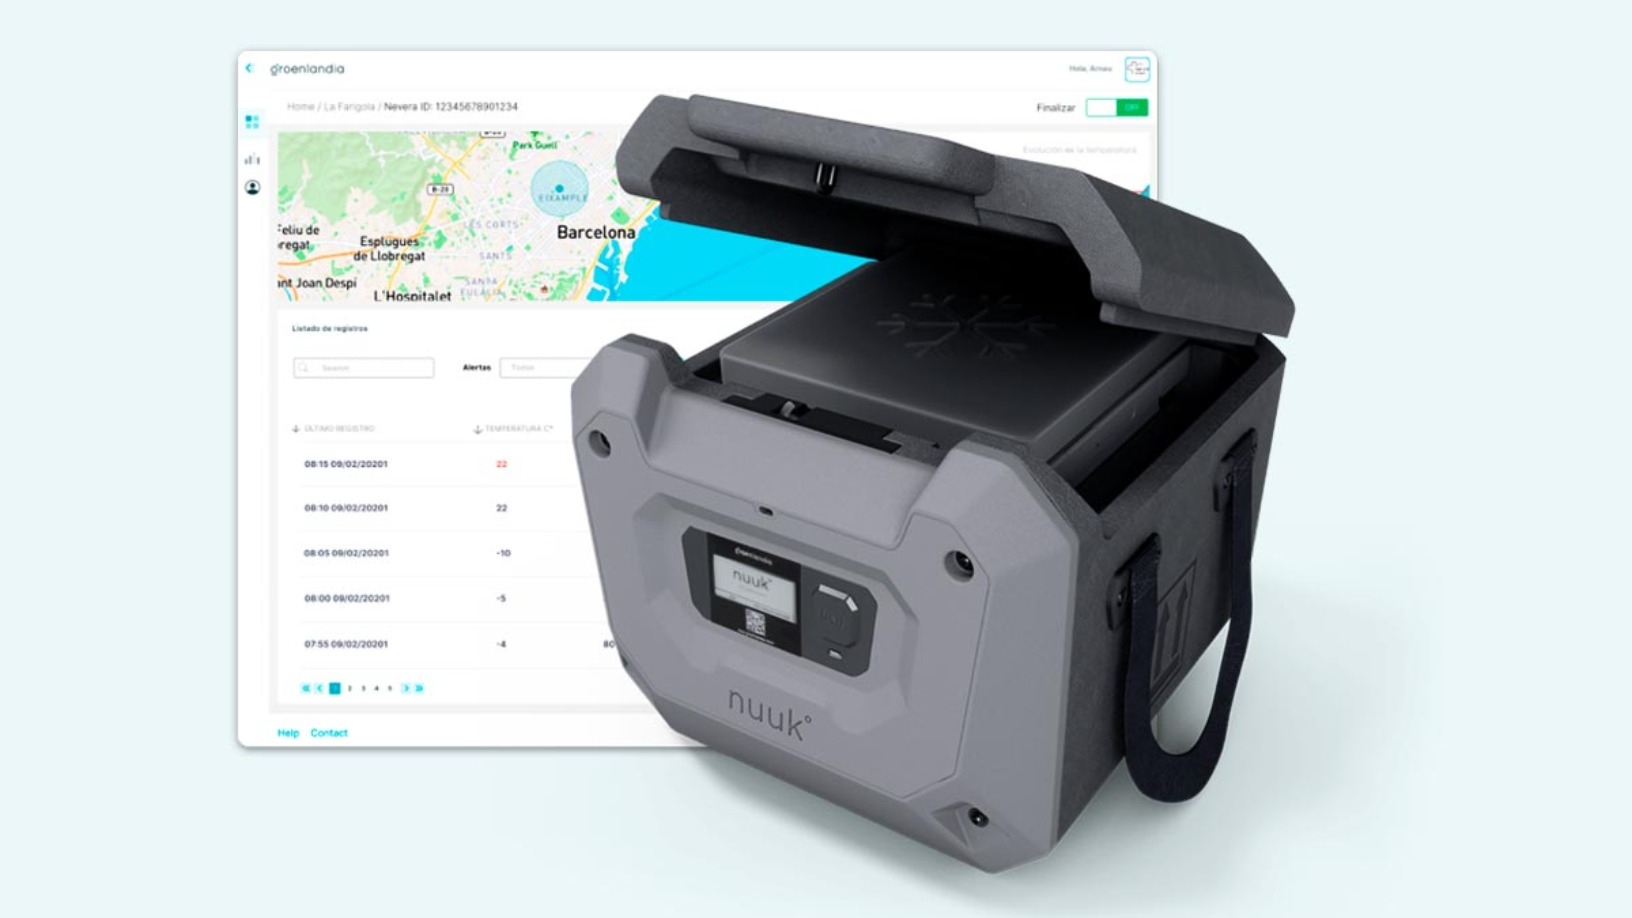 Nuuk, the cooler box poised to disrupt cold chain logistics